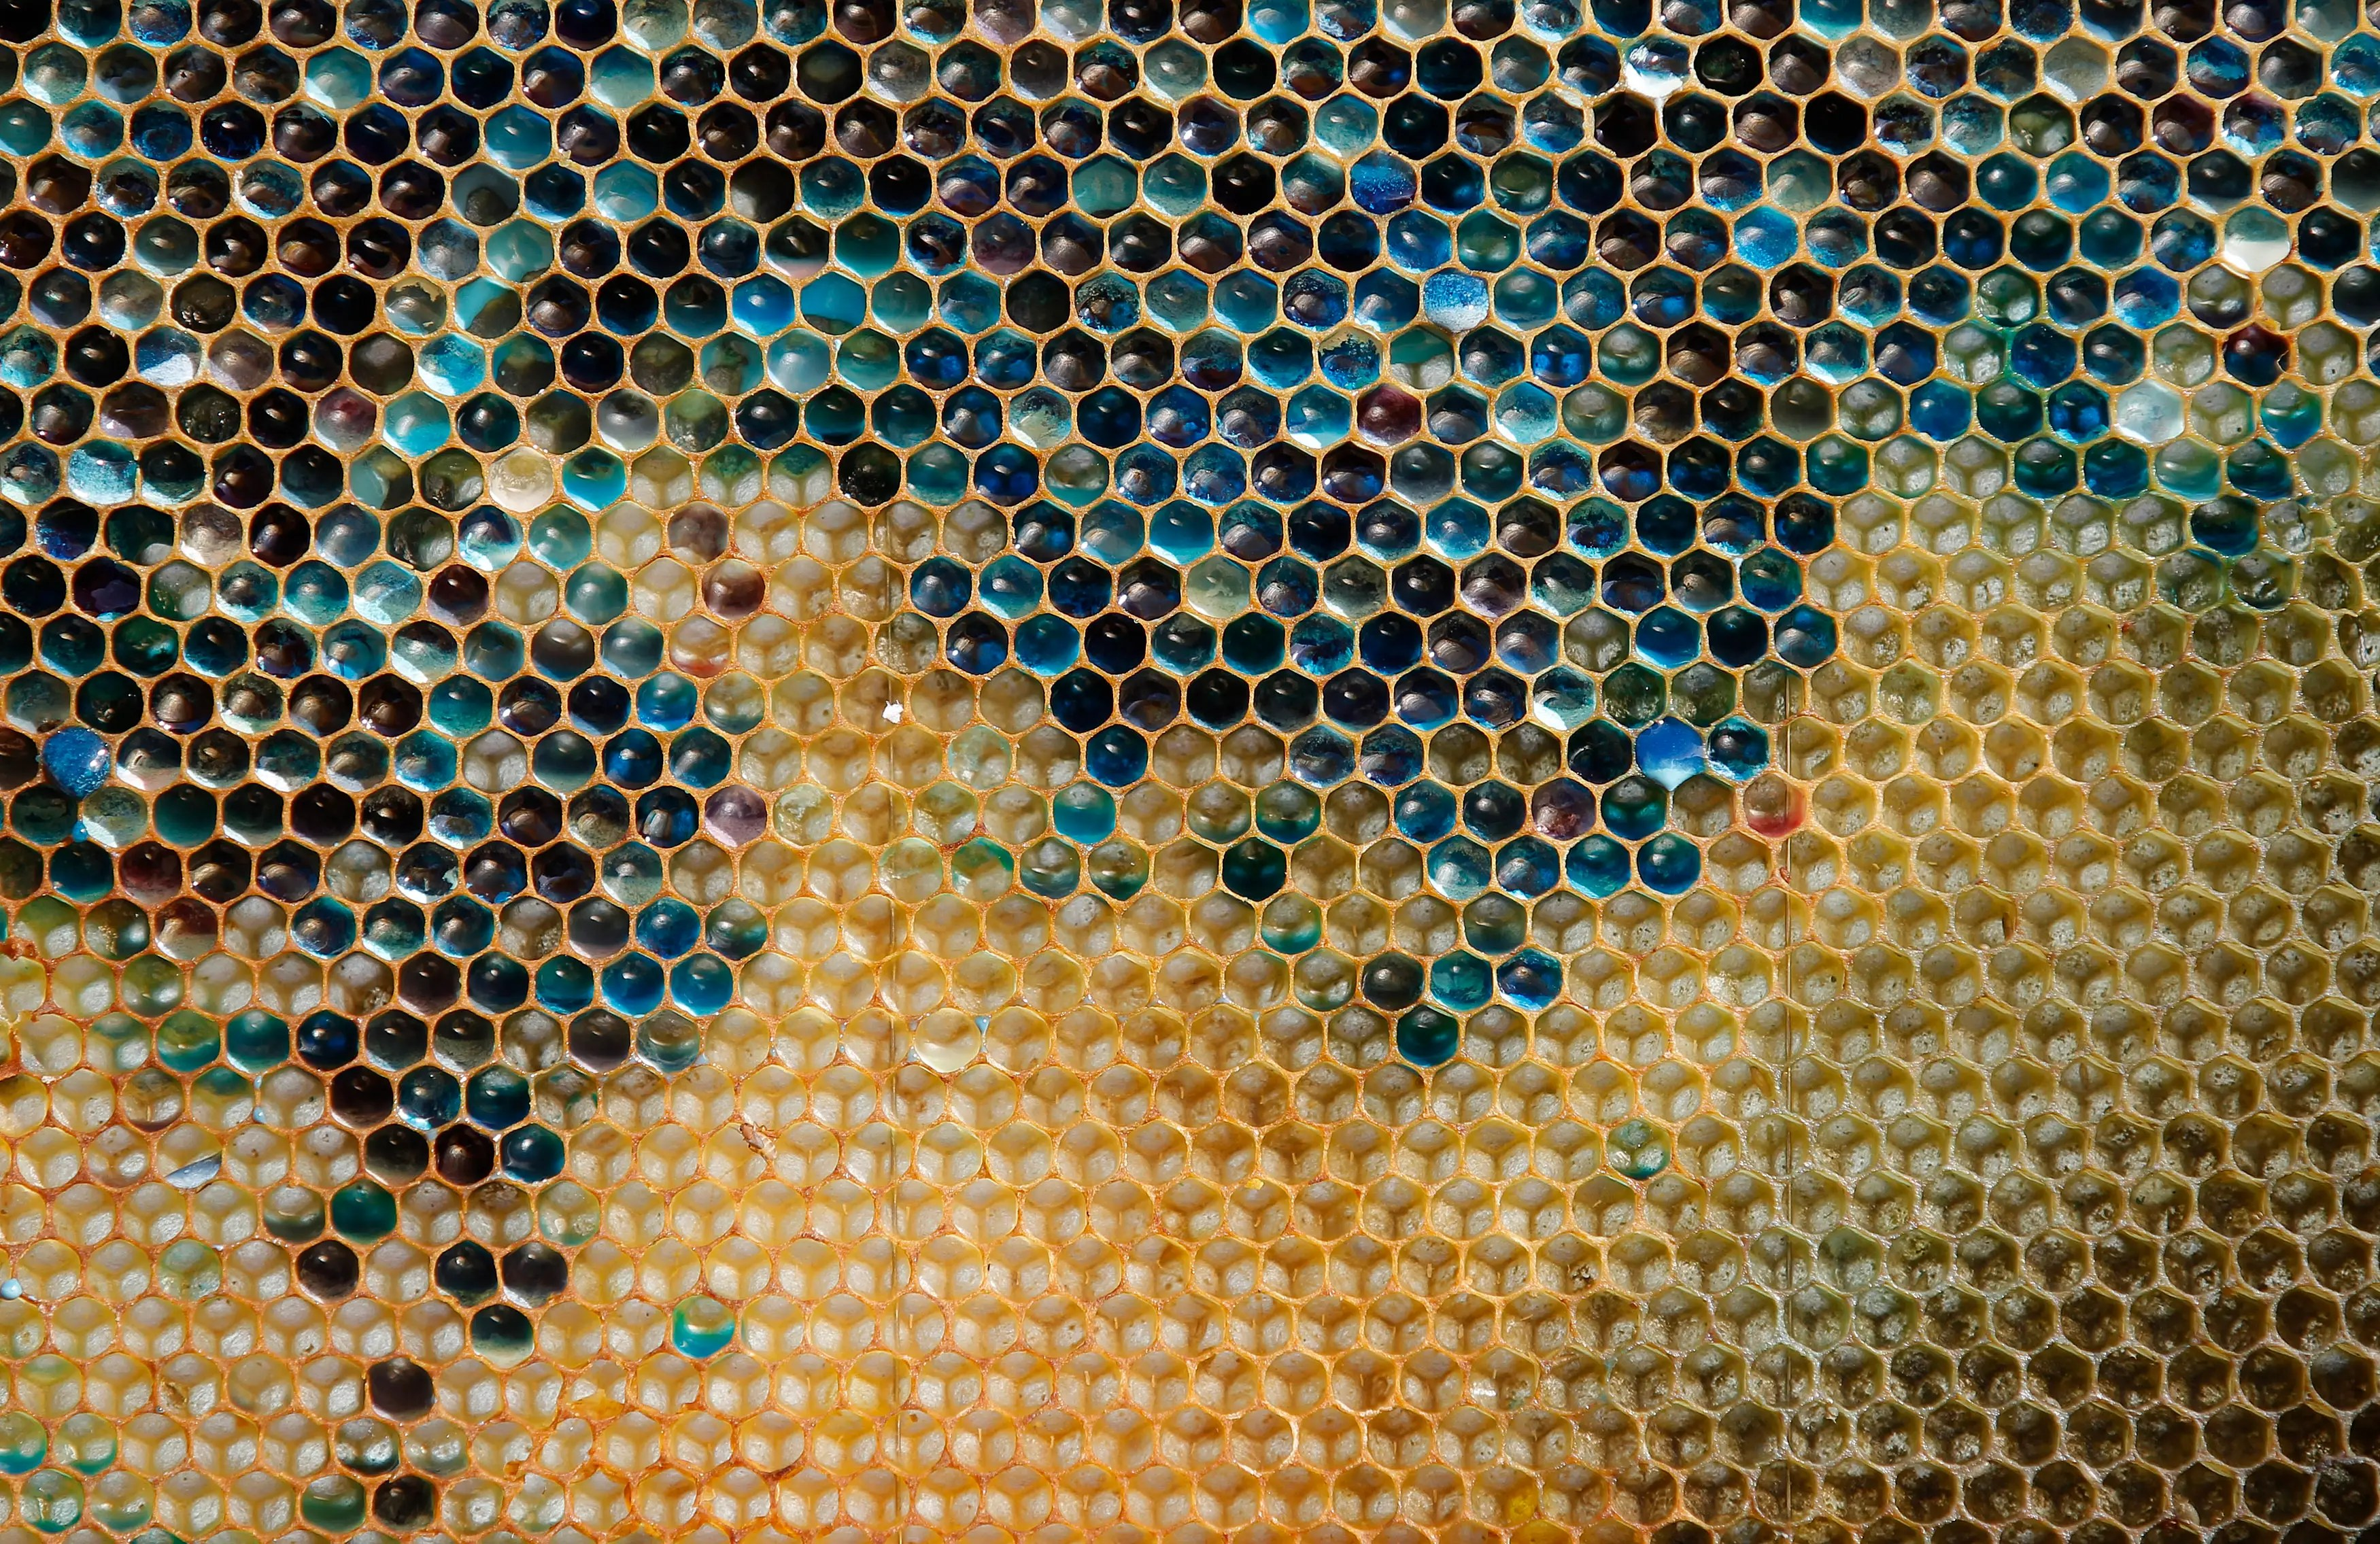 A bluish-colored honeycomb from a beehive is seen in eastern France. The unnatural shades were believed to be caused by residue from containers of M&M's candy processed at a nearby biogas plant.